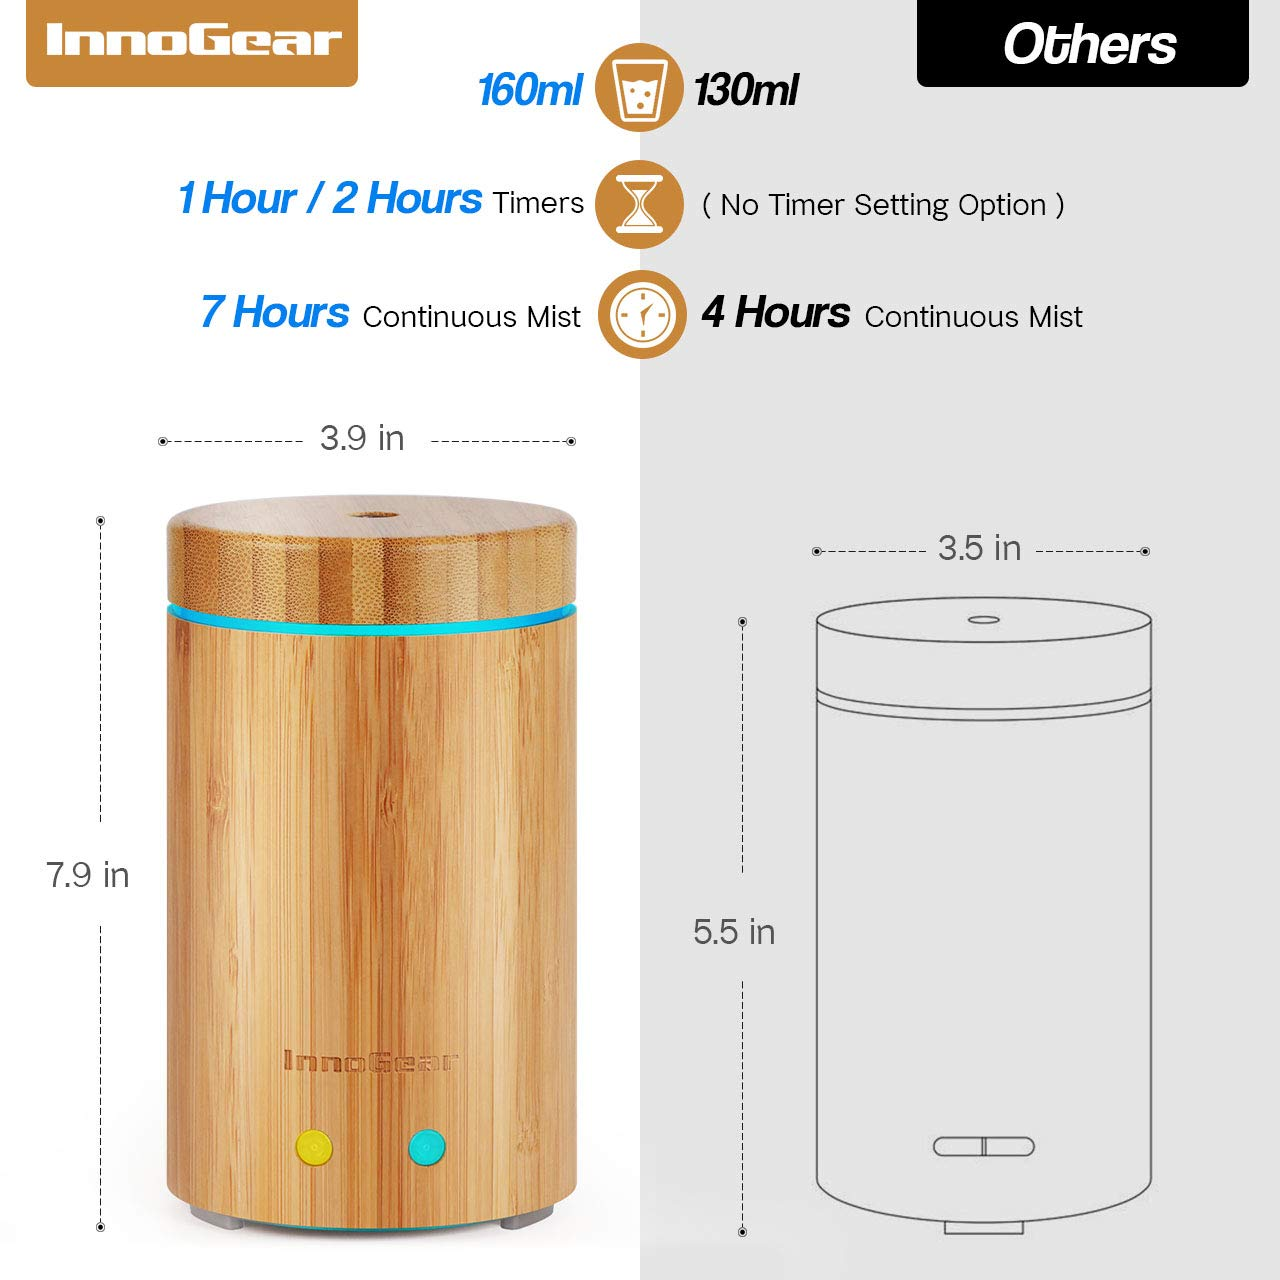 InnoGear Upgraded Real Bamboo Essential Oil Diffuser Ultrasonic Aroma Aromatherapy Diffusers Cool Mist Humidifier with Intermittent Continuous Mist 2 Working Modes Waterless Auto Off 7 Color LED Light by InnoGear (Image #2)